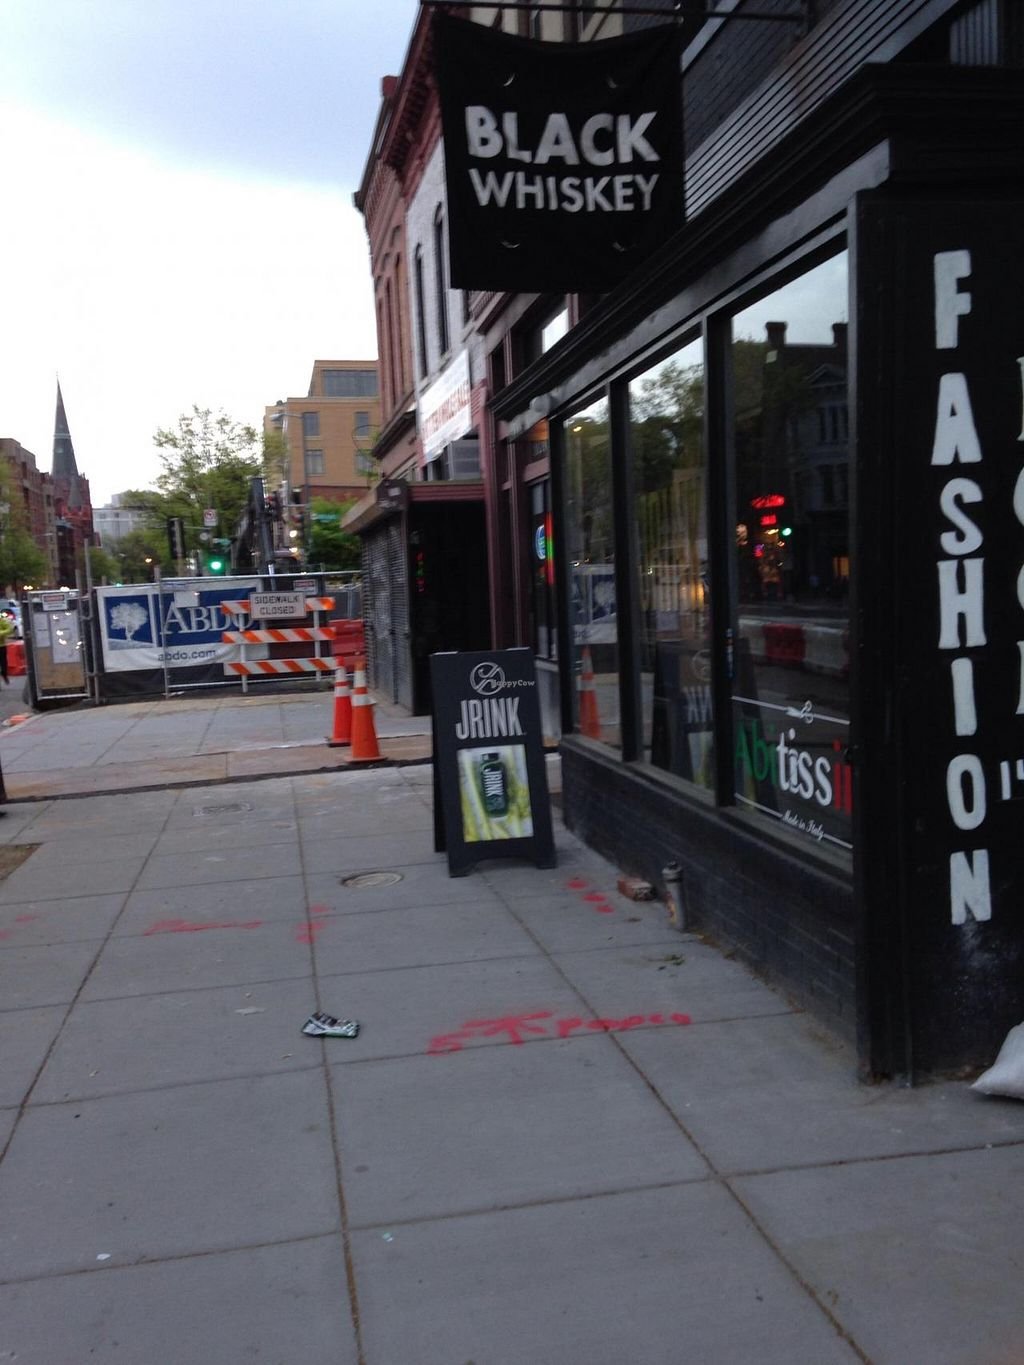 """Photo of Jrink Juicery - 14th St  by <a href=""""/members/profile/cookiem"""">cookiem</a> <br/>Shares space- so look for their signage <br/> April 28, 2015  - <a href='/contact/abuse/image/57278/100566'>Report</a>"""